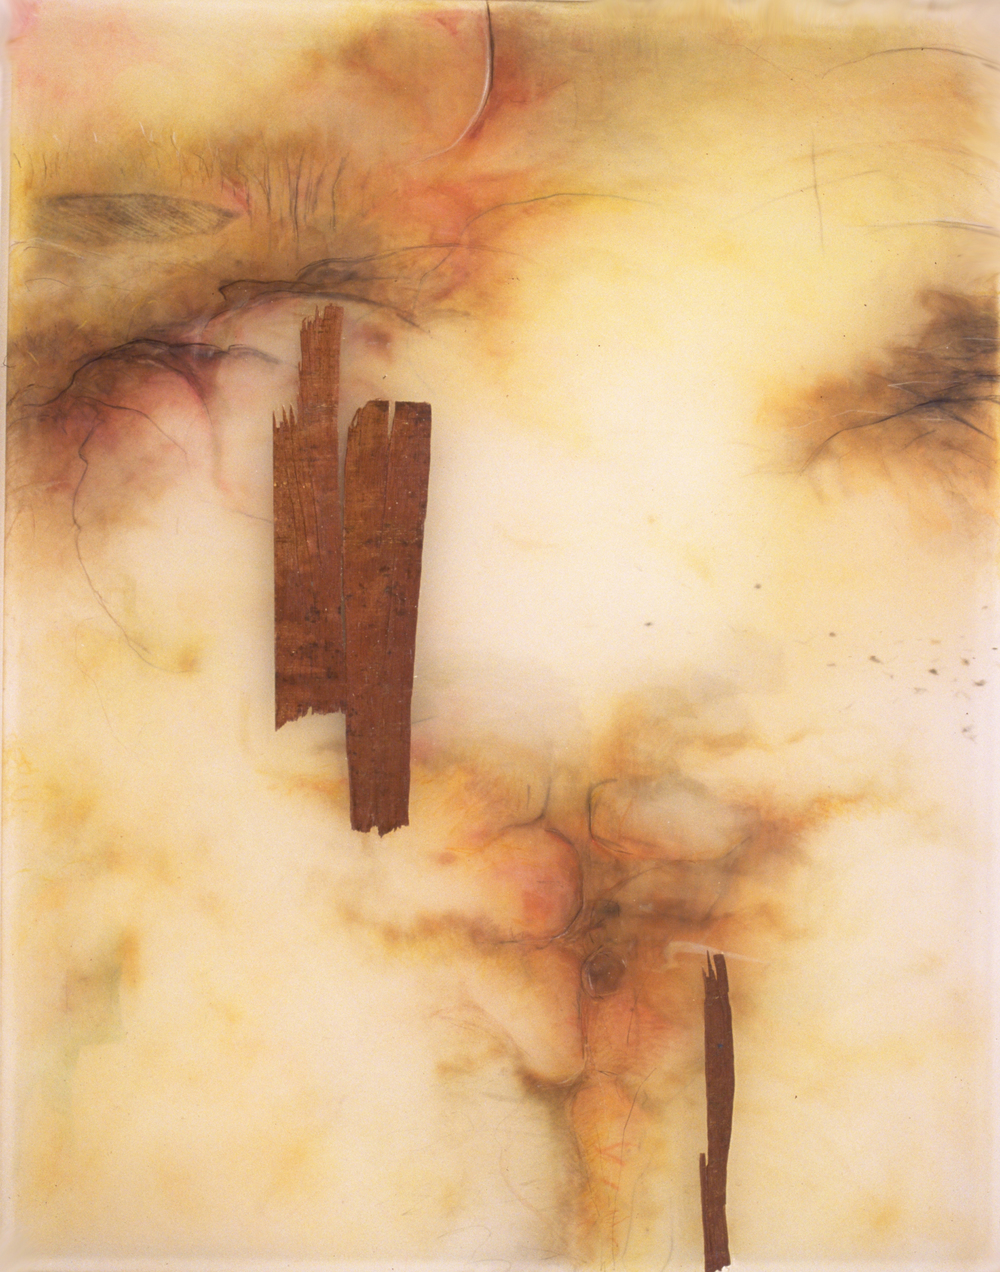 Woods to Mist,  1999  Acrylic and prismacolor on plexi 29 x 25 x 1 inches